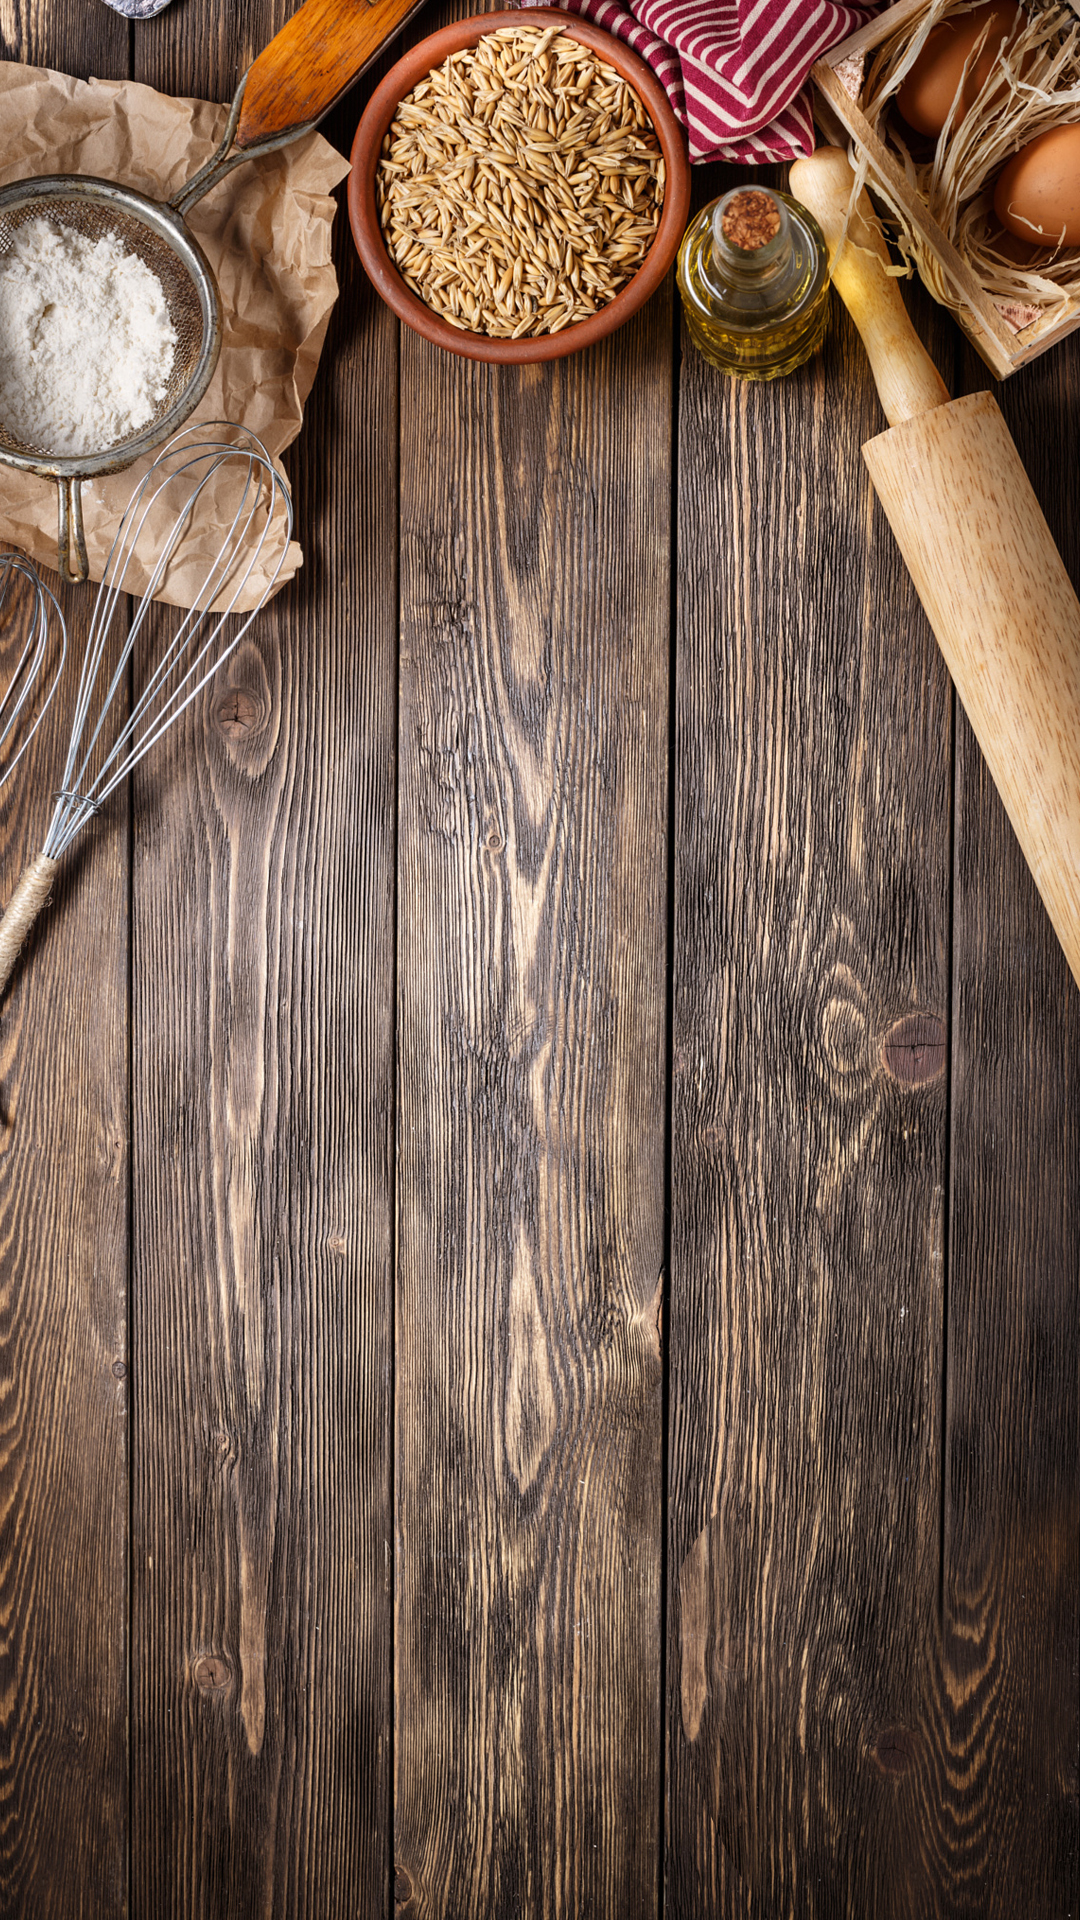 food wood plank background h5  food  board  wood